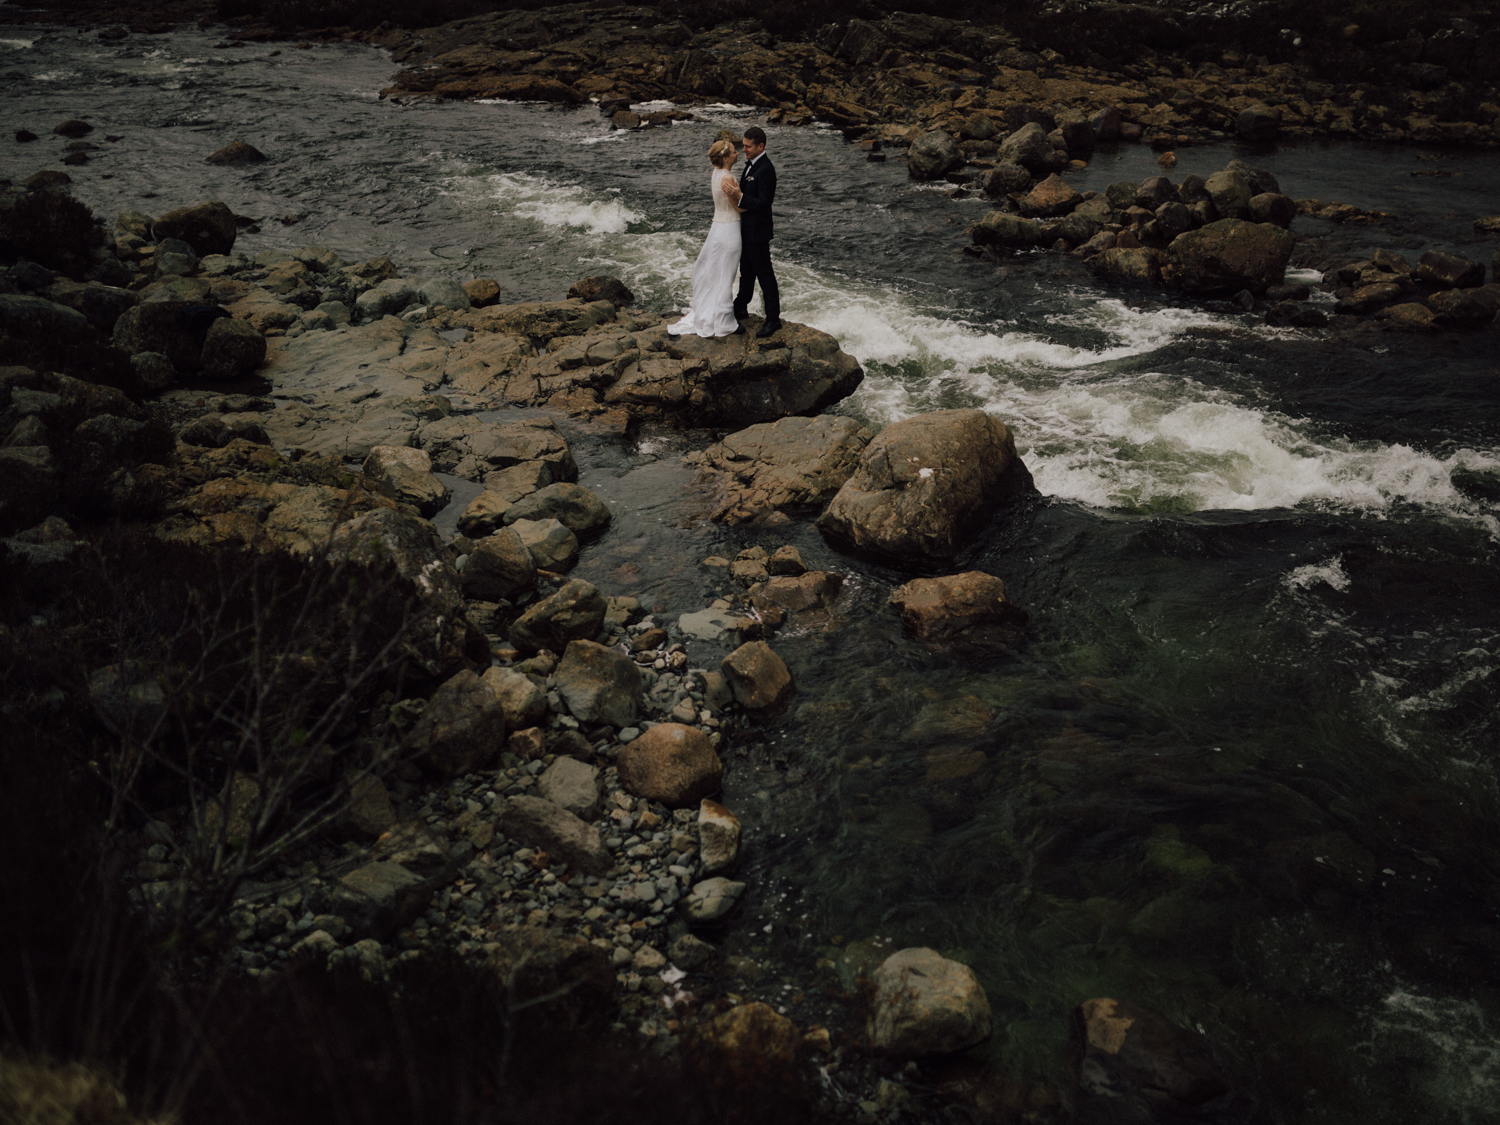 capyture-wedding-photographer-destination-elopement-isle-skye-scotland-388